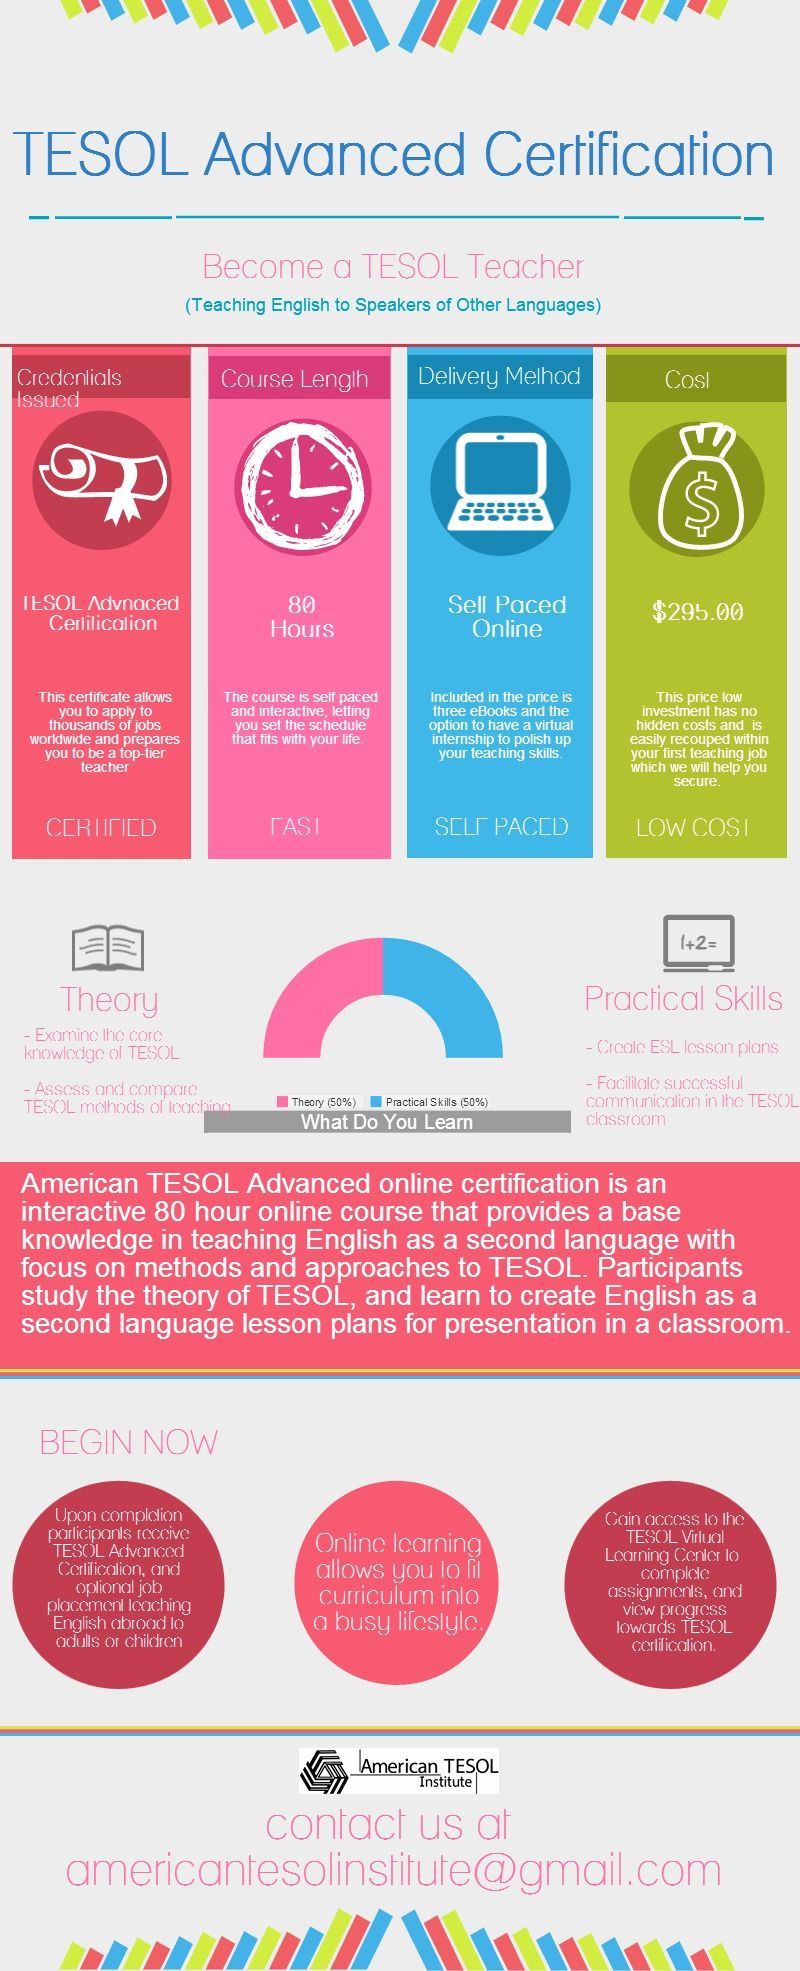 Learn About Tesol Advanced Certification And Online Course For